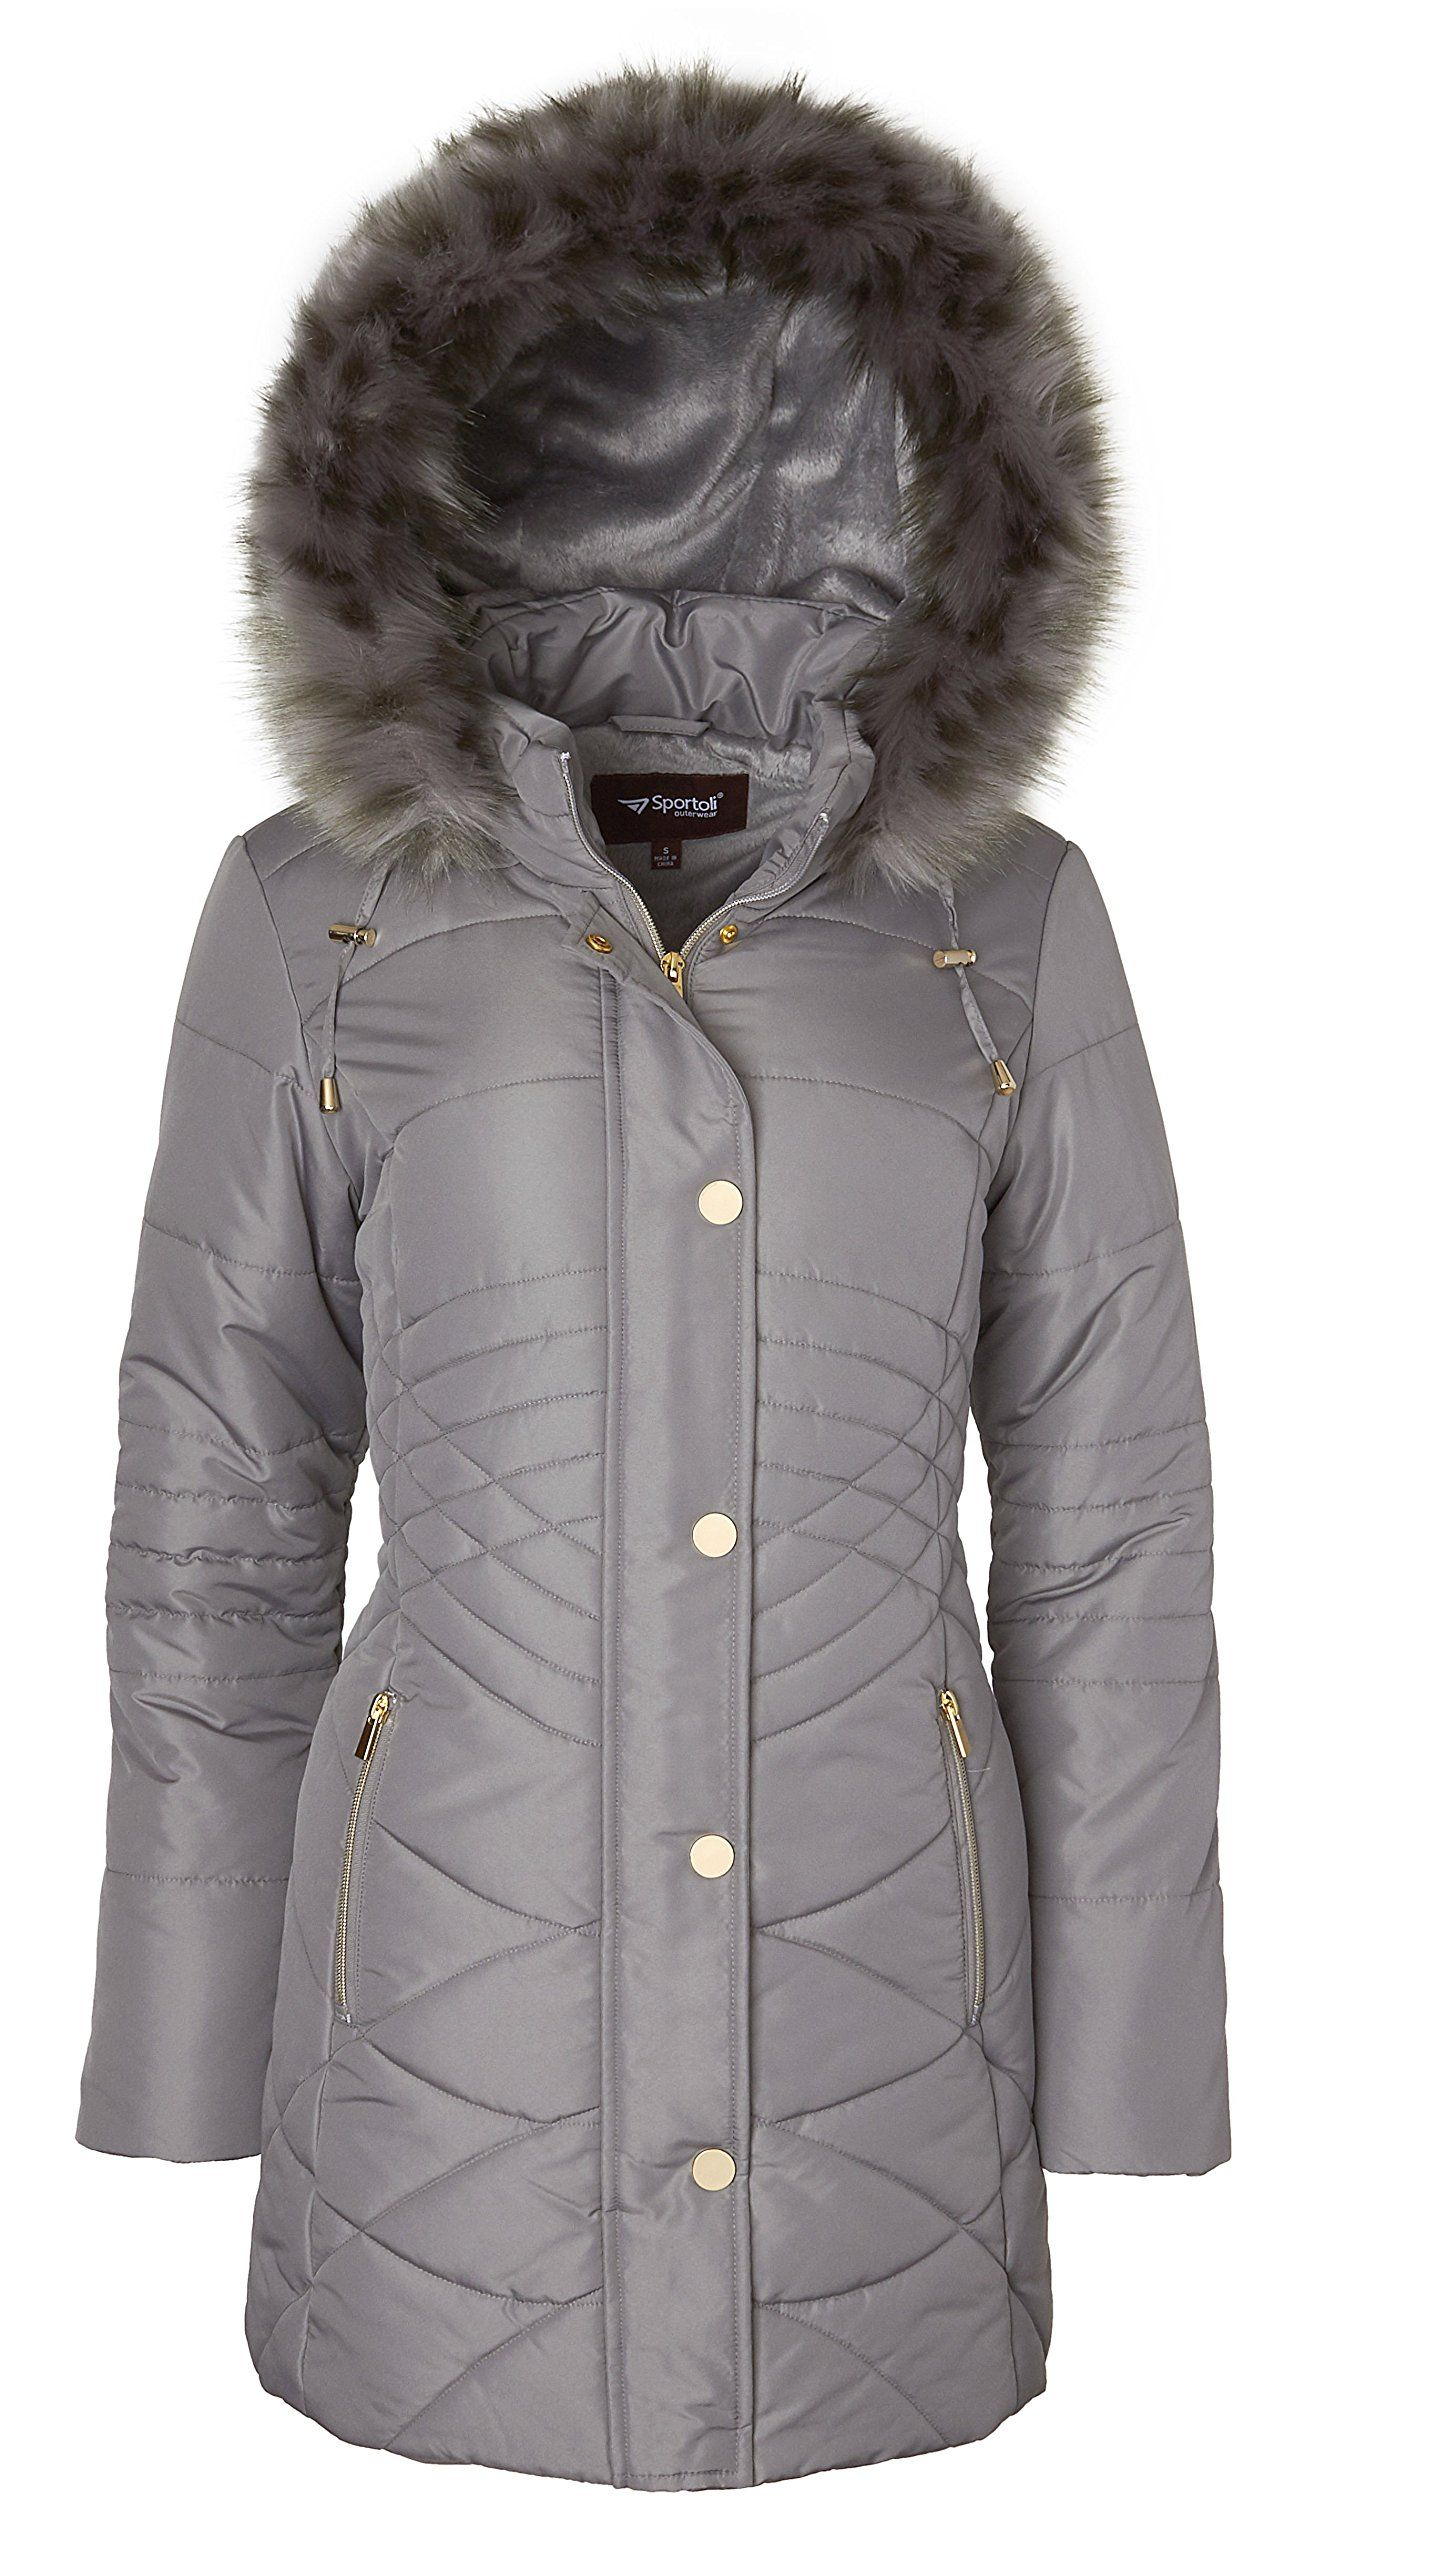 929d553392b Sportoli Womens Longer Length Plush Lined Puffer Coat and ZipOff  Detacheable Fur Trim Hood Titanium Large